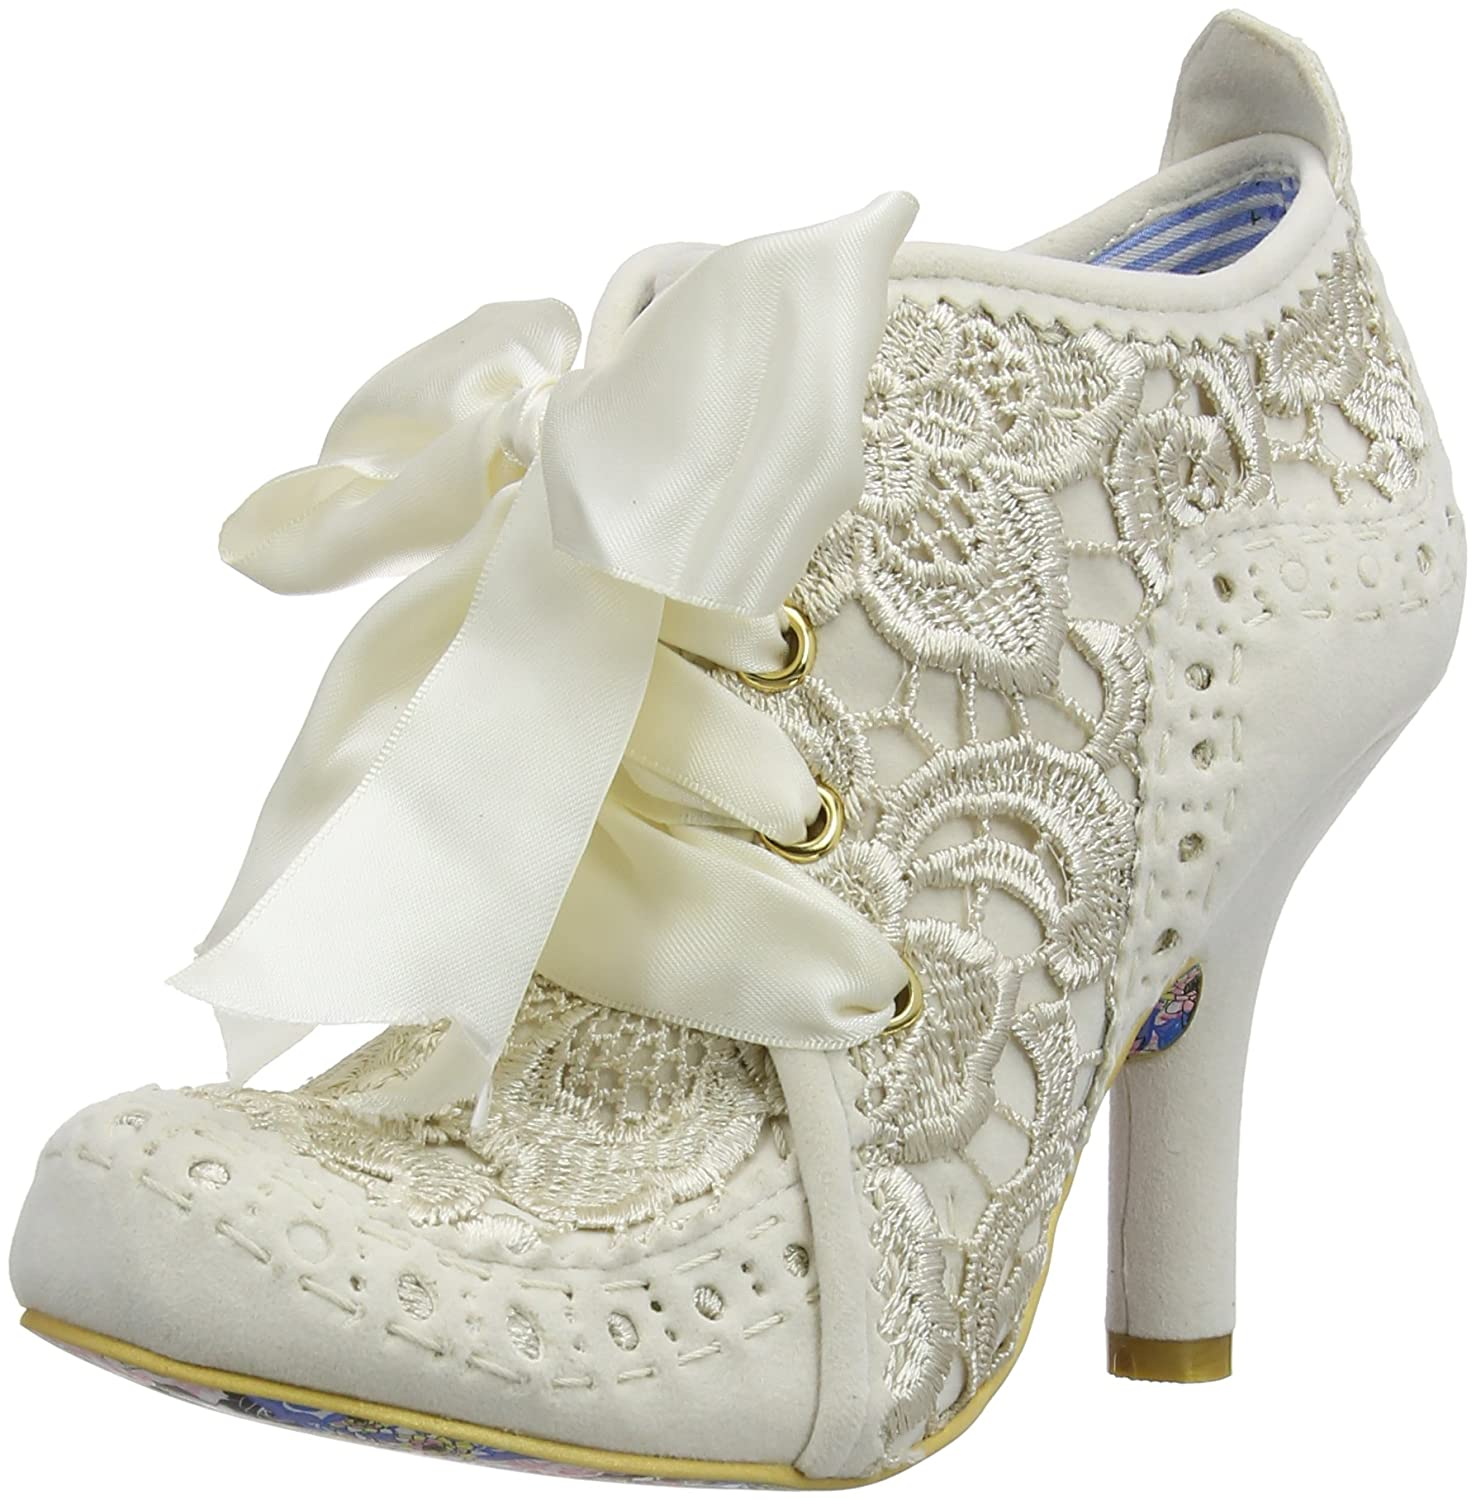 Irregular Choice Abigail's Third Party